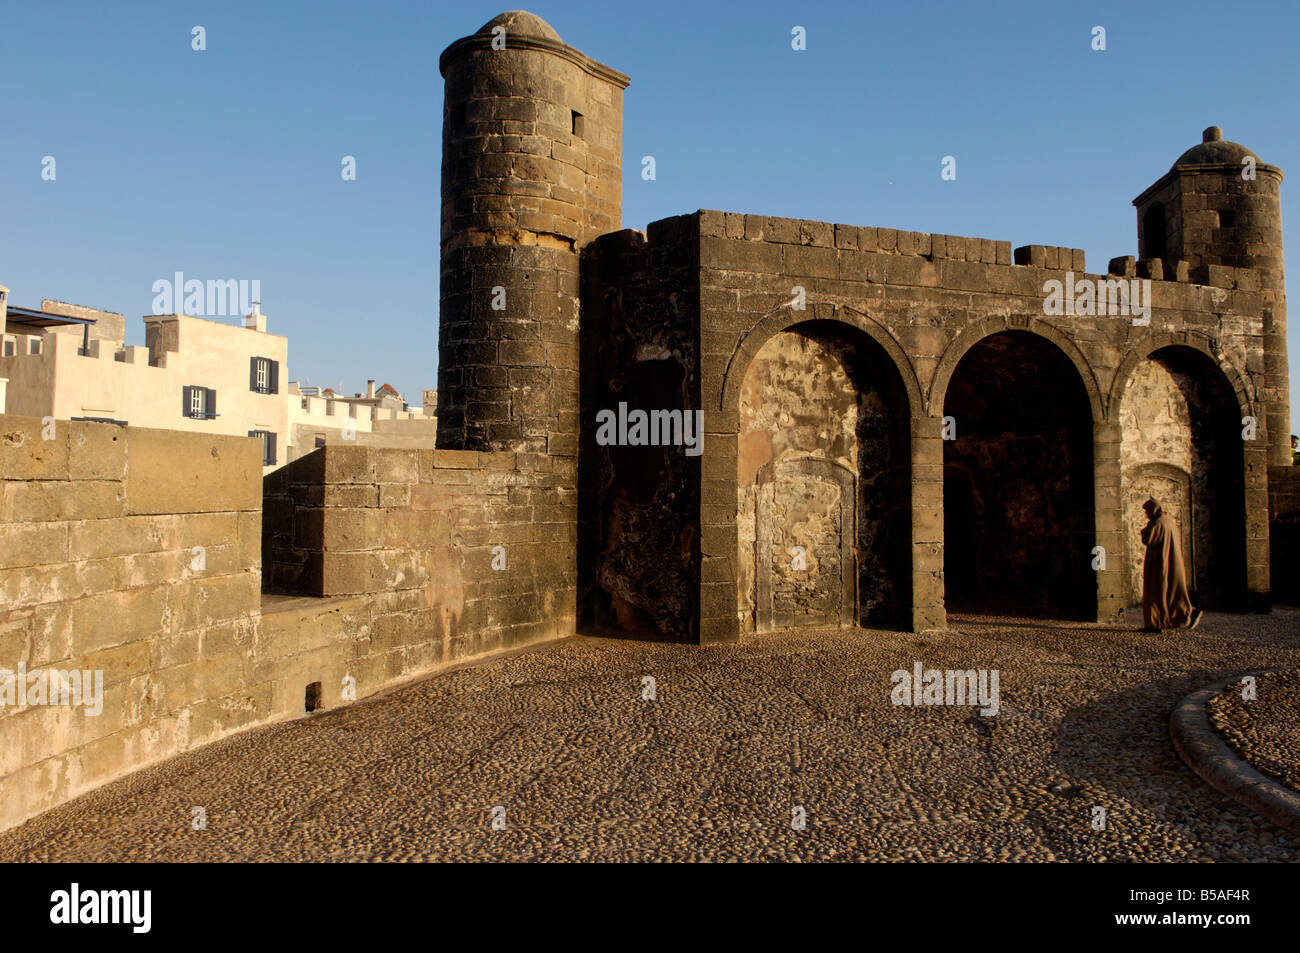 Skala of the Kasbah, a mighty crenellated bastion, Essaouira, Morocco, Africa - Stock Image